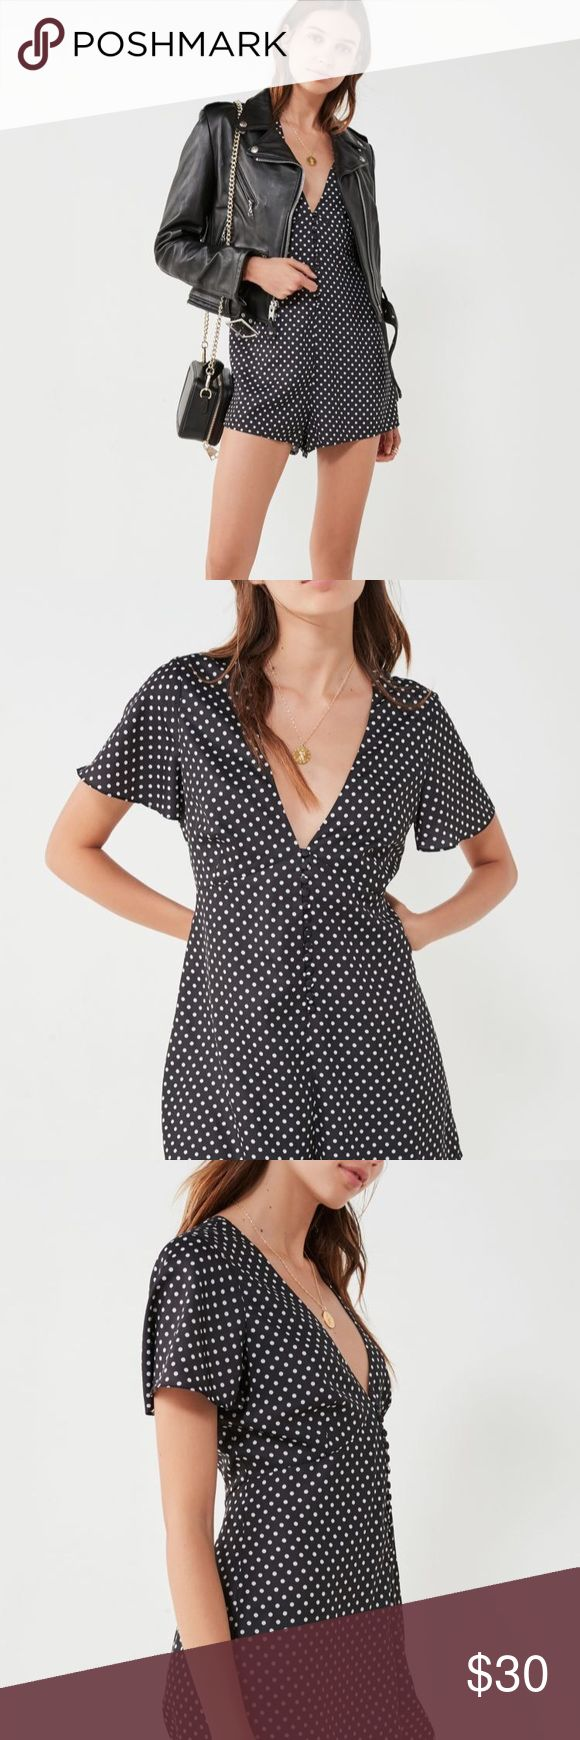 Polka Dot Silky Romper Brand new. Never Worn! Buttons all down the front. Perfect for going out or over tights. Urban Outfitters Dresses Mini